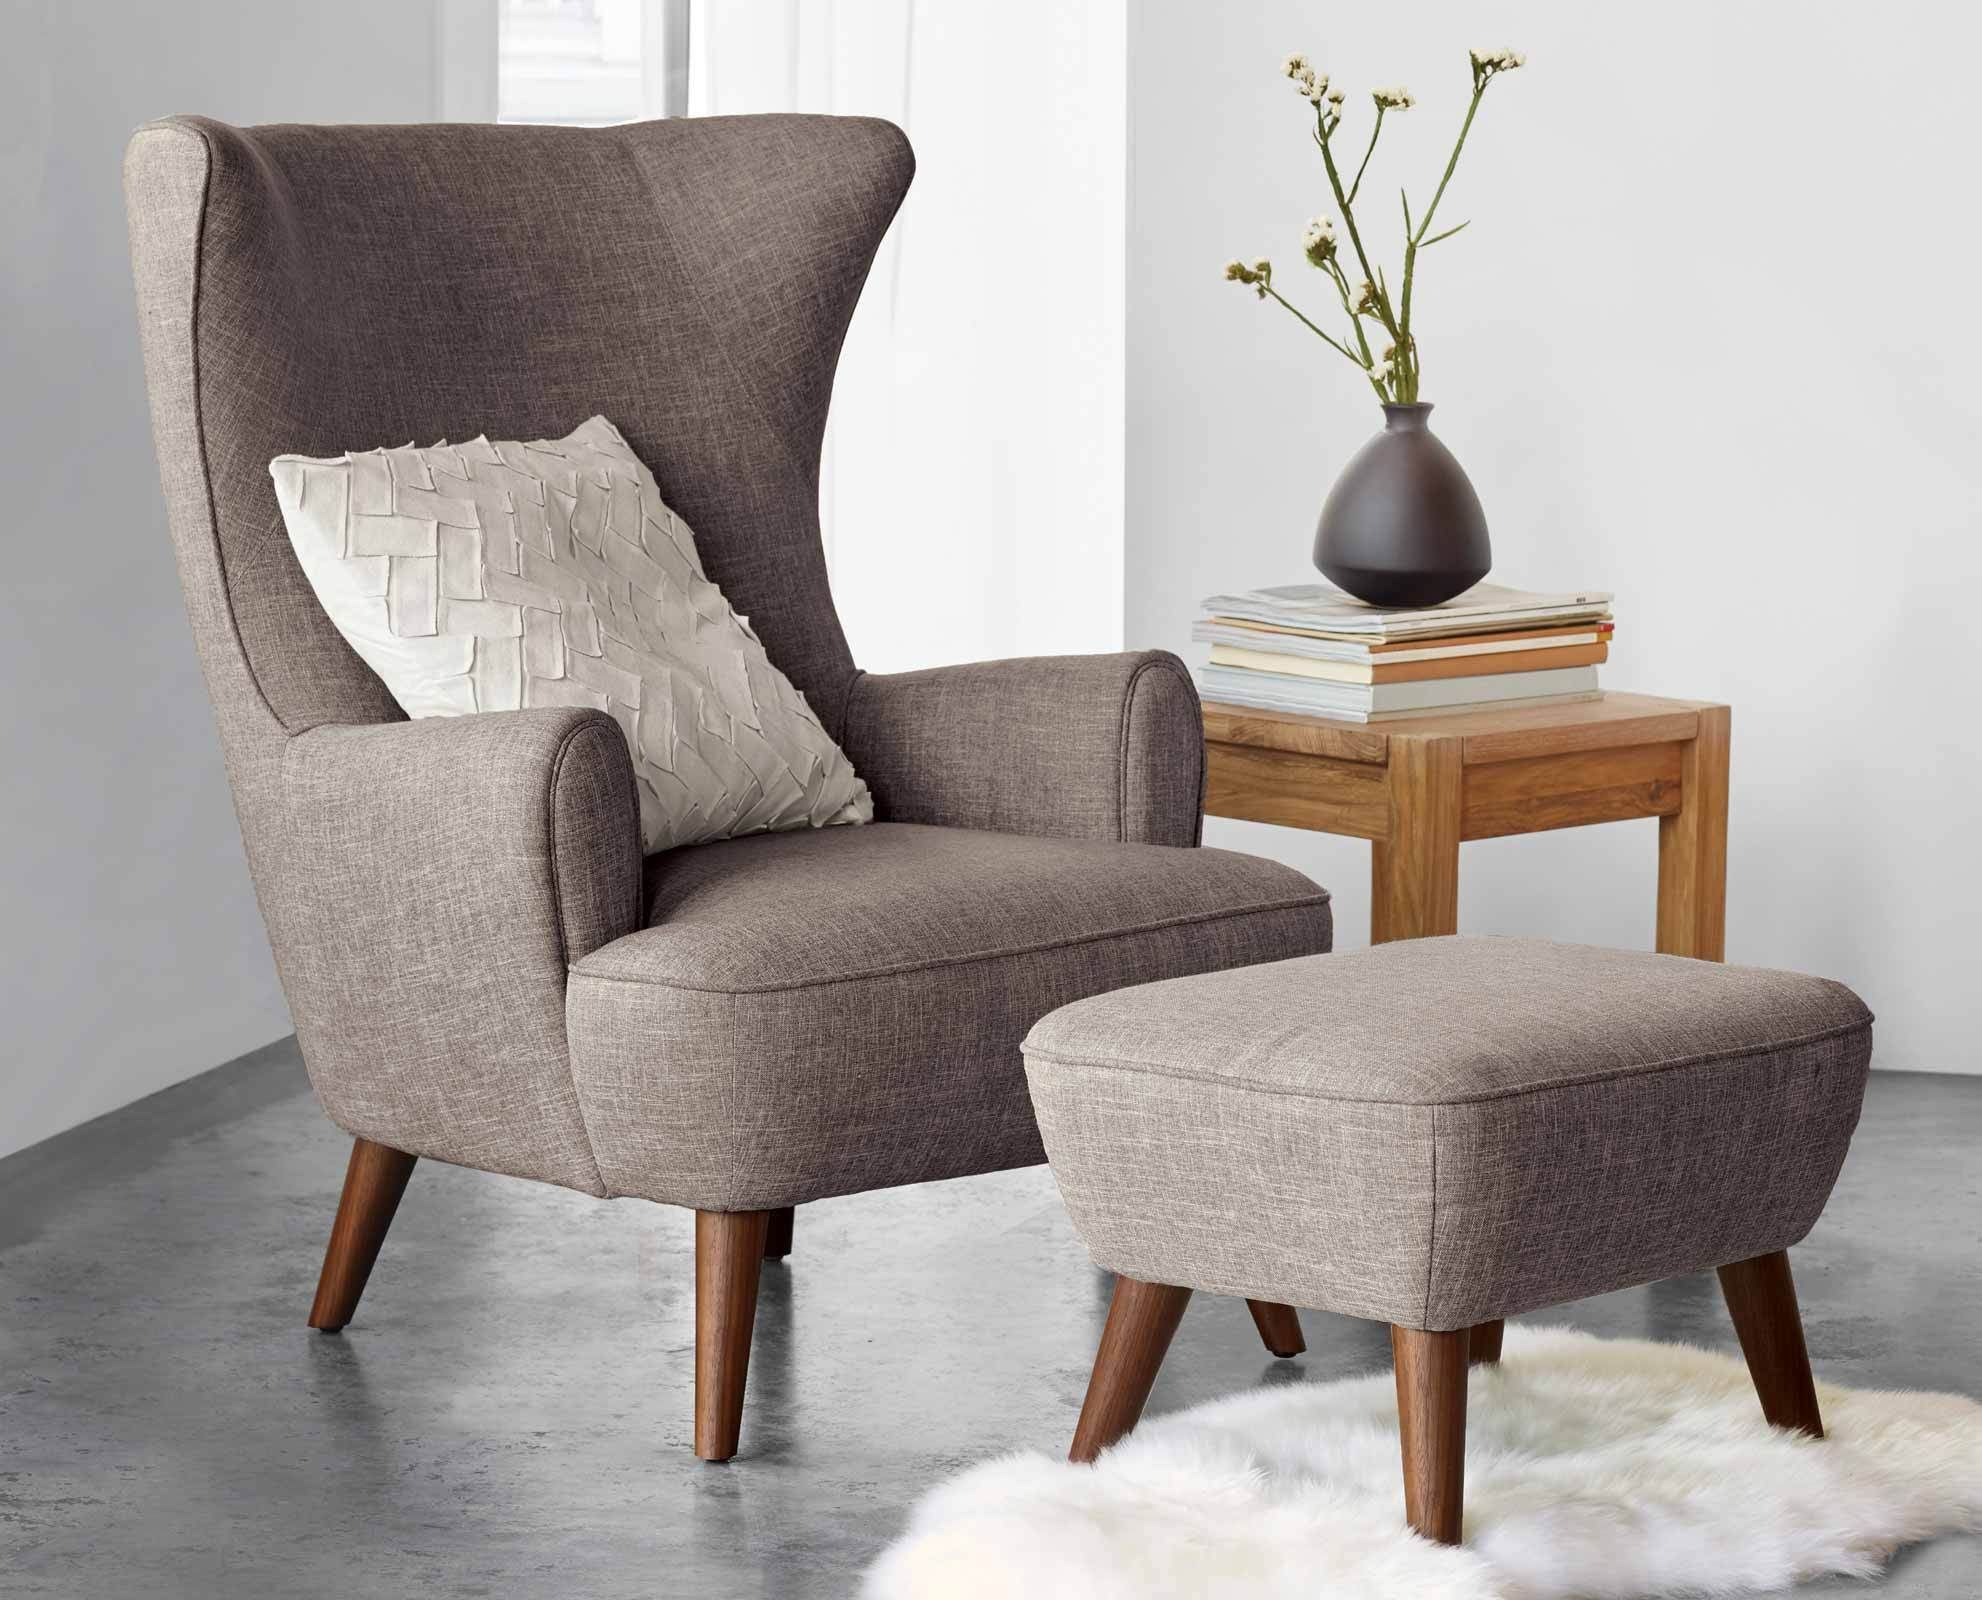 Katja High Back Chair Browndania Furniturewith An Overall Gorgeous High Back Living Room Chair Design Decoration